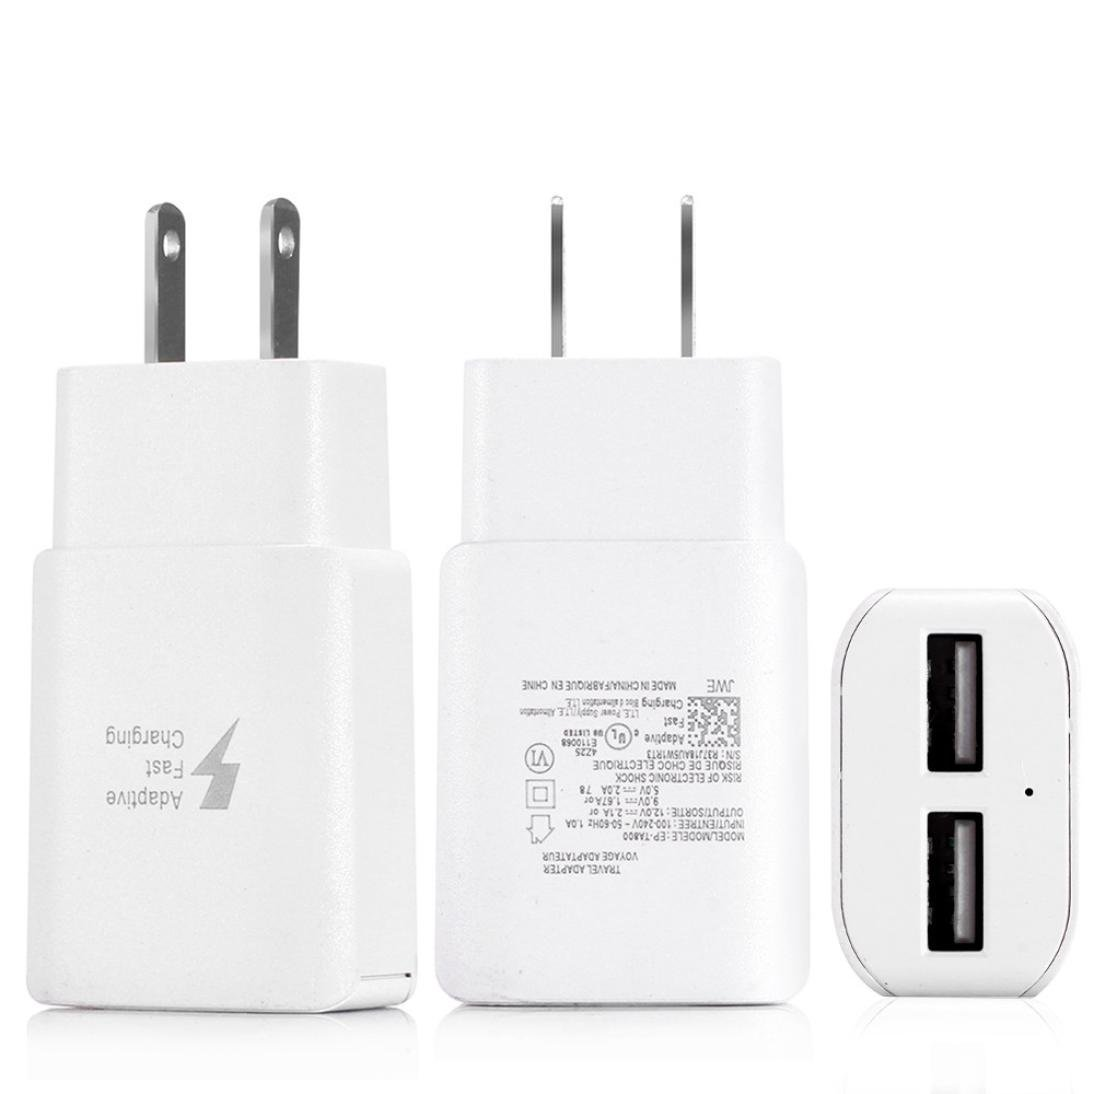 SUKEQ Wall Charger, Dual Ports USB Wall Charger EU/US Plug Adapter Home Travel Power Adapter for iPhone X/8/7/6 Plus, iPad, Samsung Galaxy S9 S8 Plus (US Plug) by SUKEQ (Image #2)